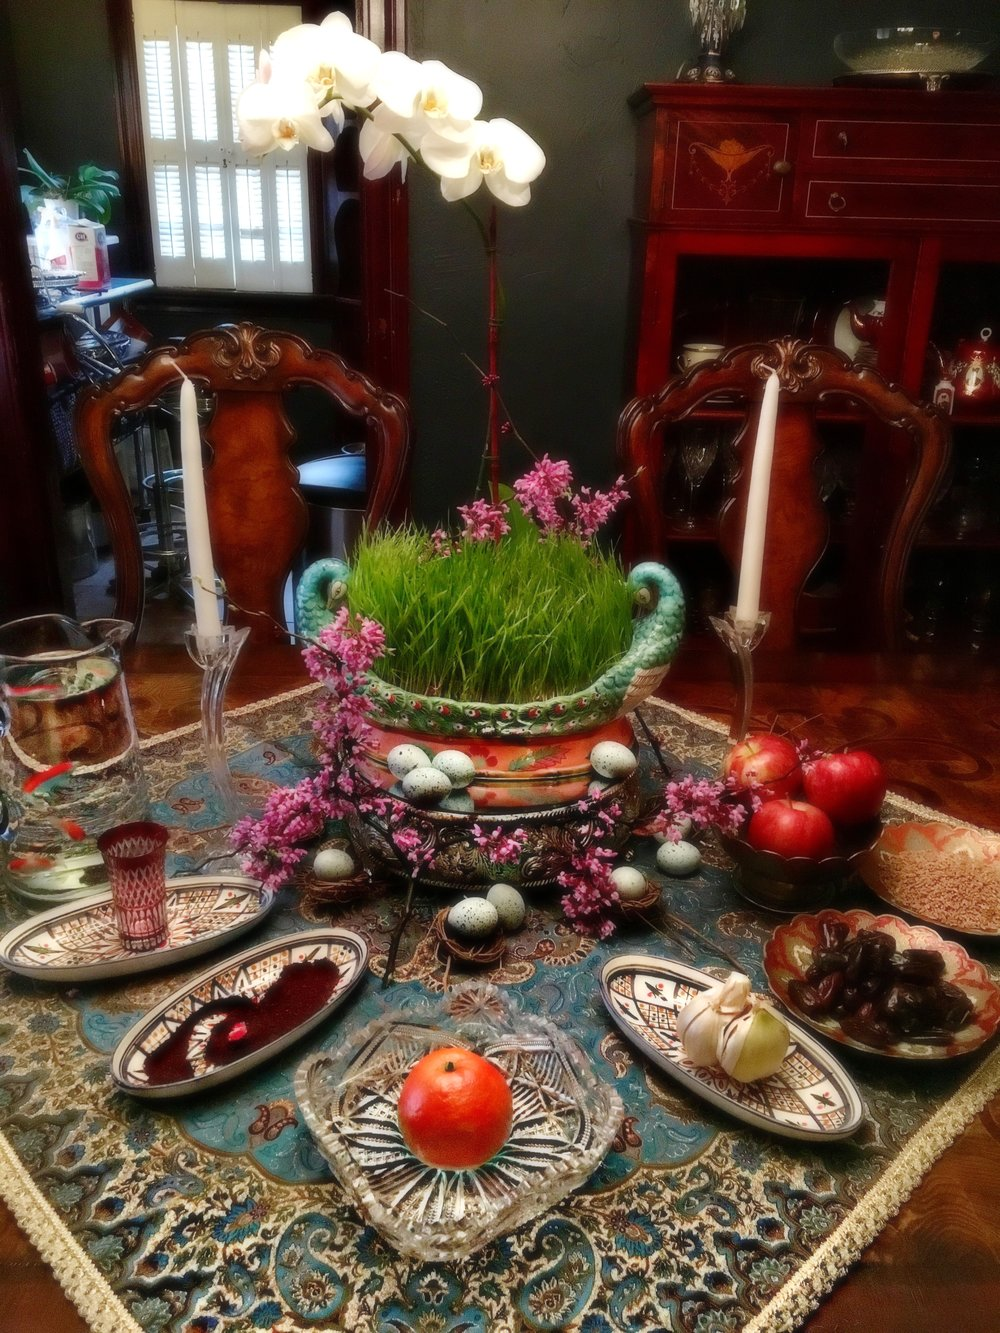 CELEBRATING PERSIAN NEW YEAR THE SOFREH HAFT SEEN